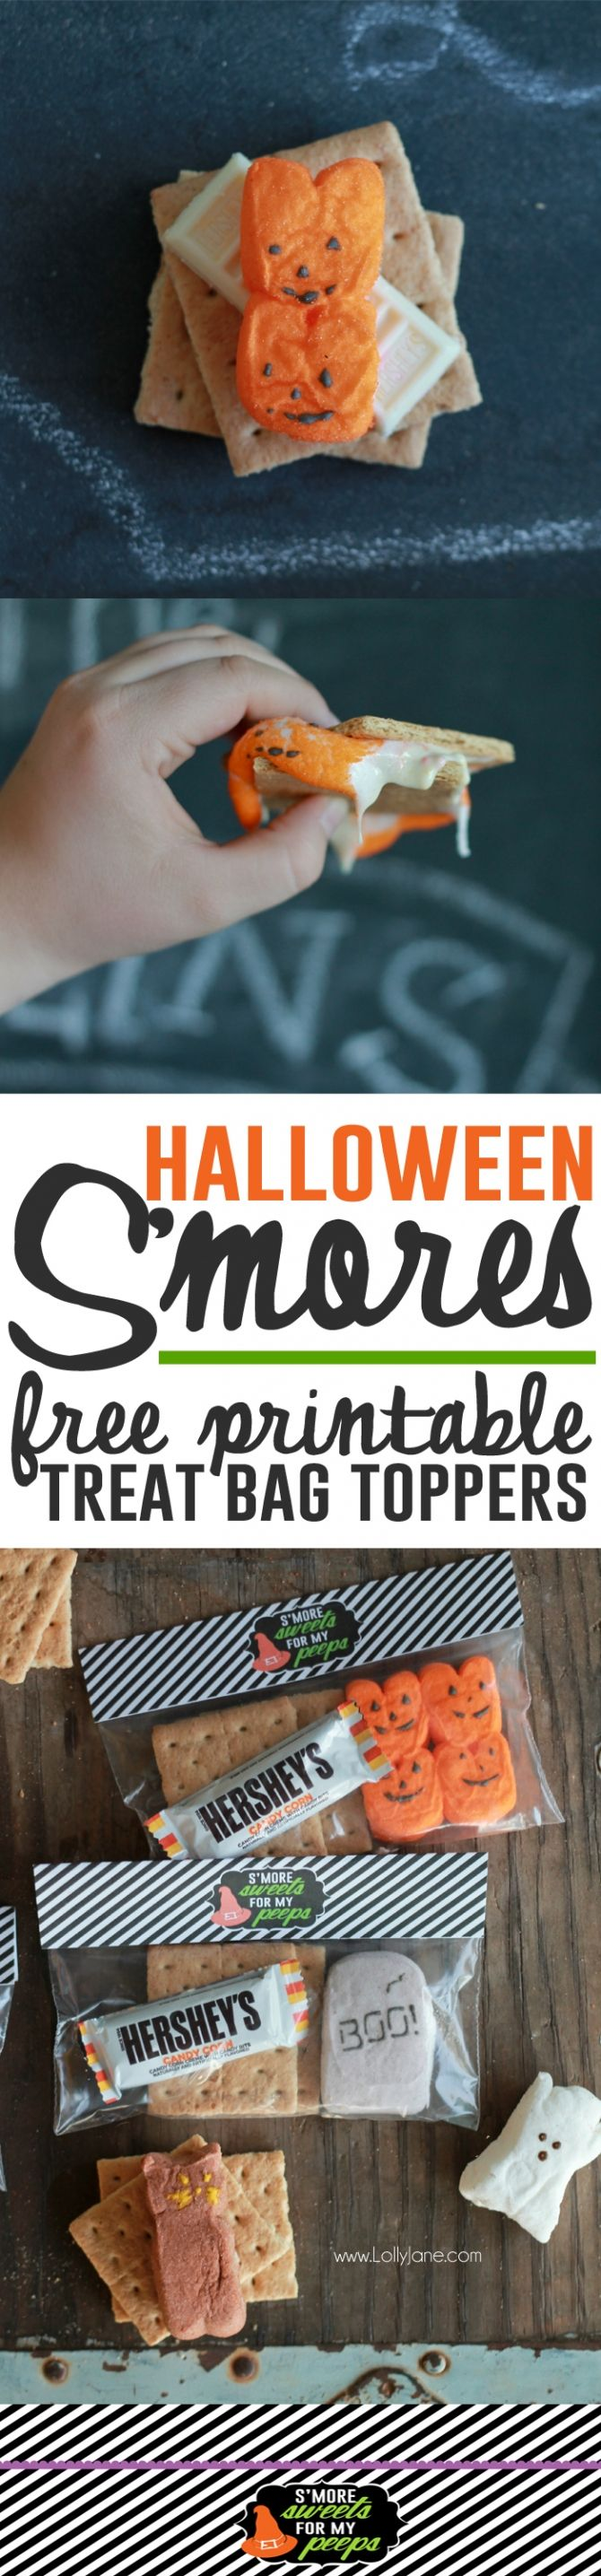 FREE Halloween S'more bag toppers, cute kids gift idea or fun Halloween party snack idea!